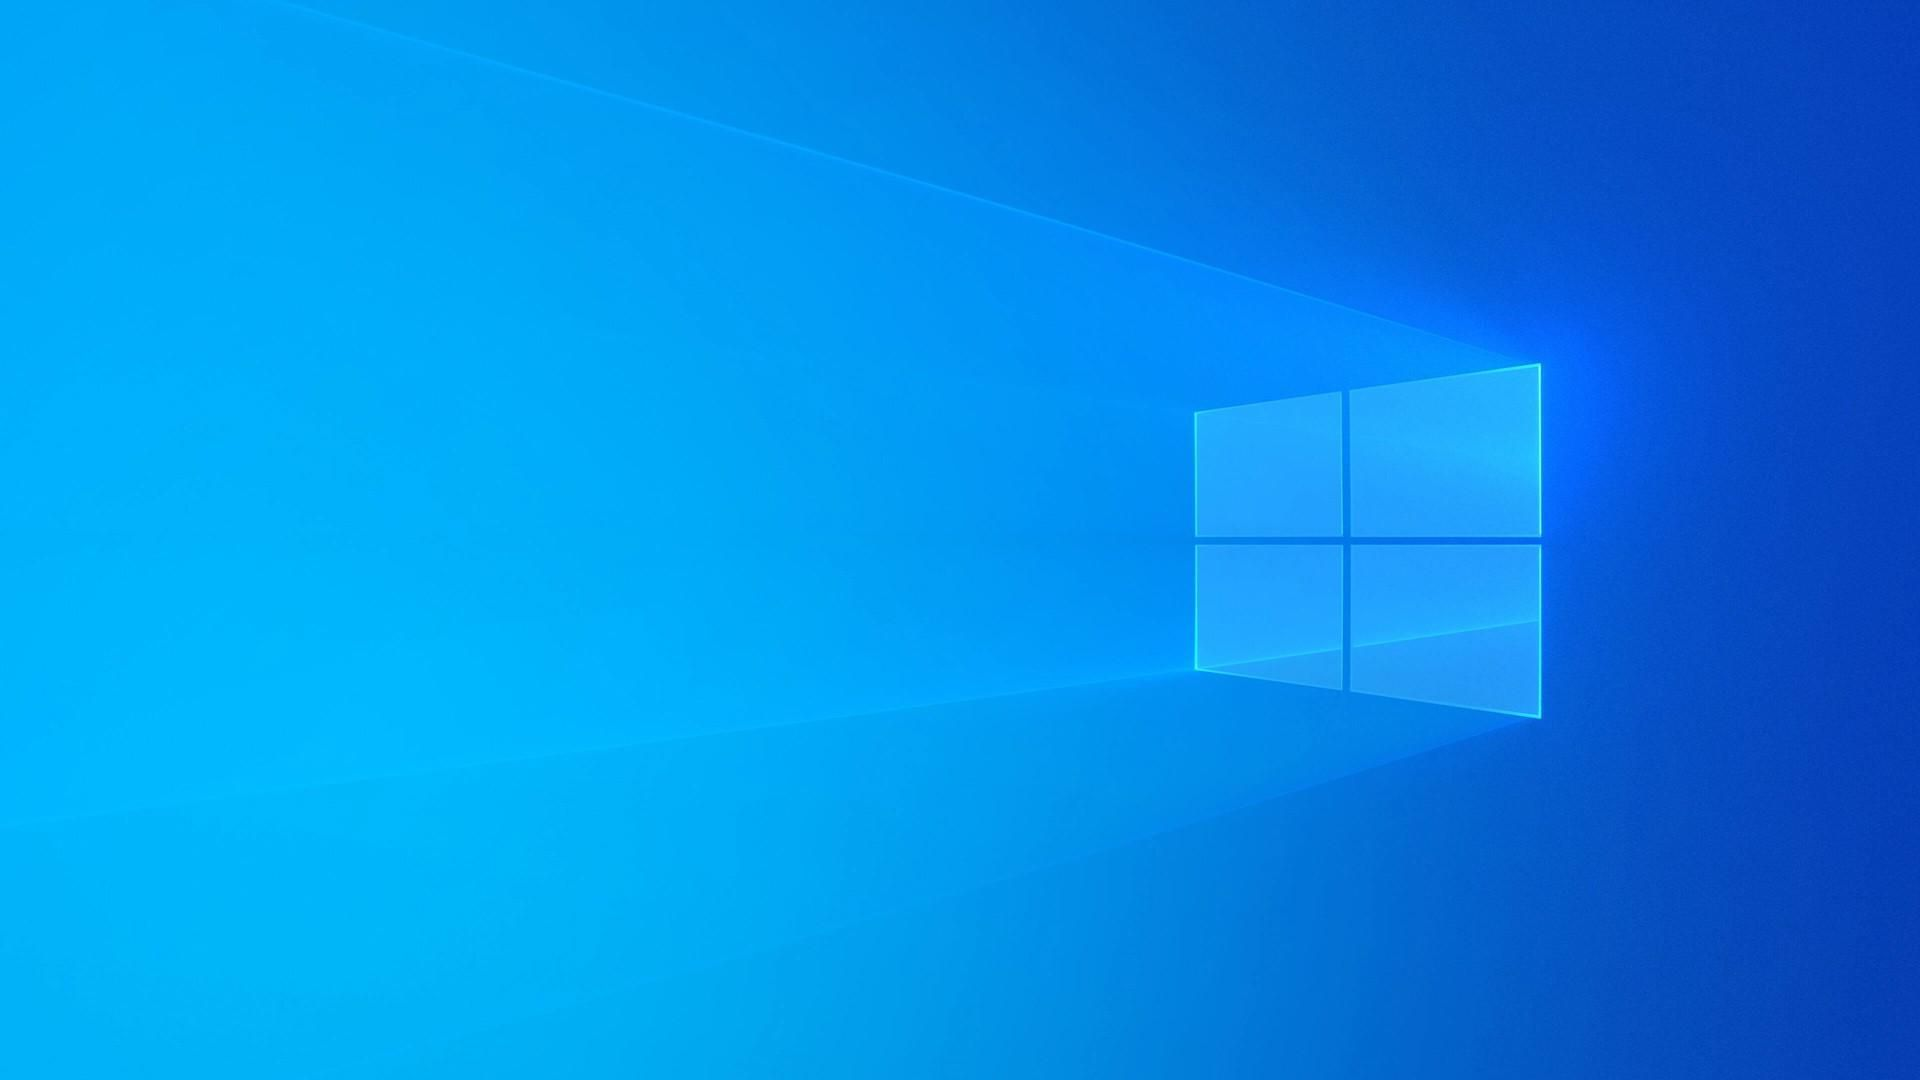 Windows Light [1920x1080]  Wallpaper windows 10, Windows 10